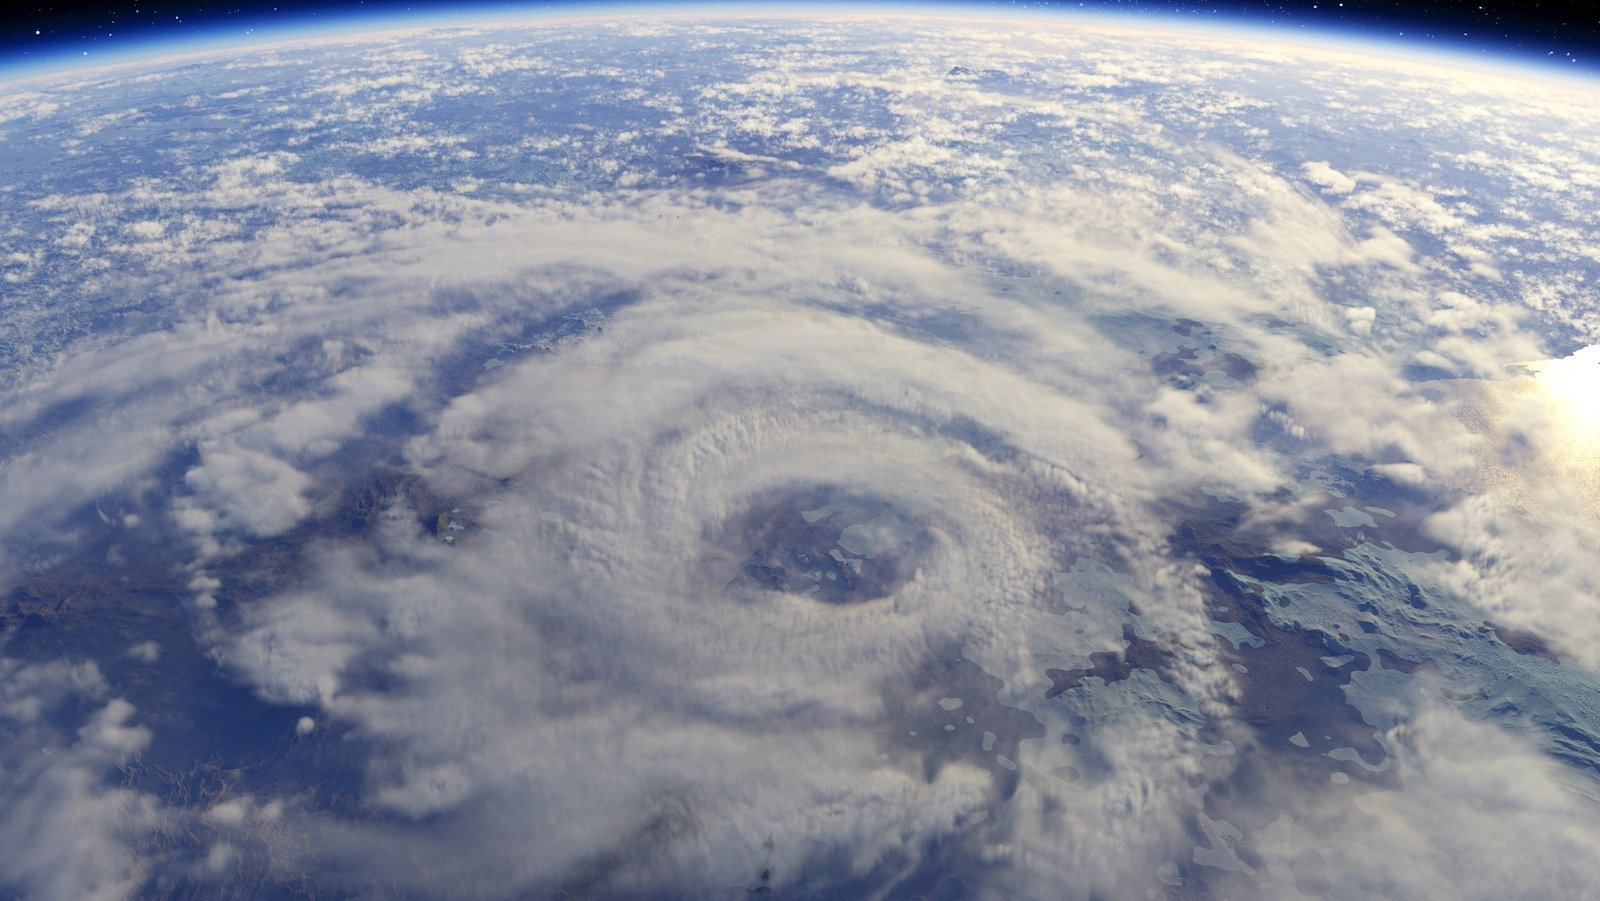 Hurricane - 12 photo